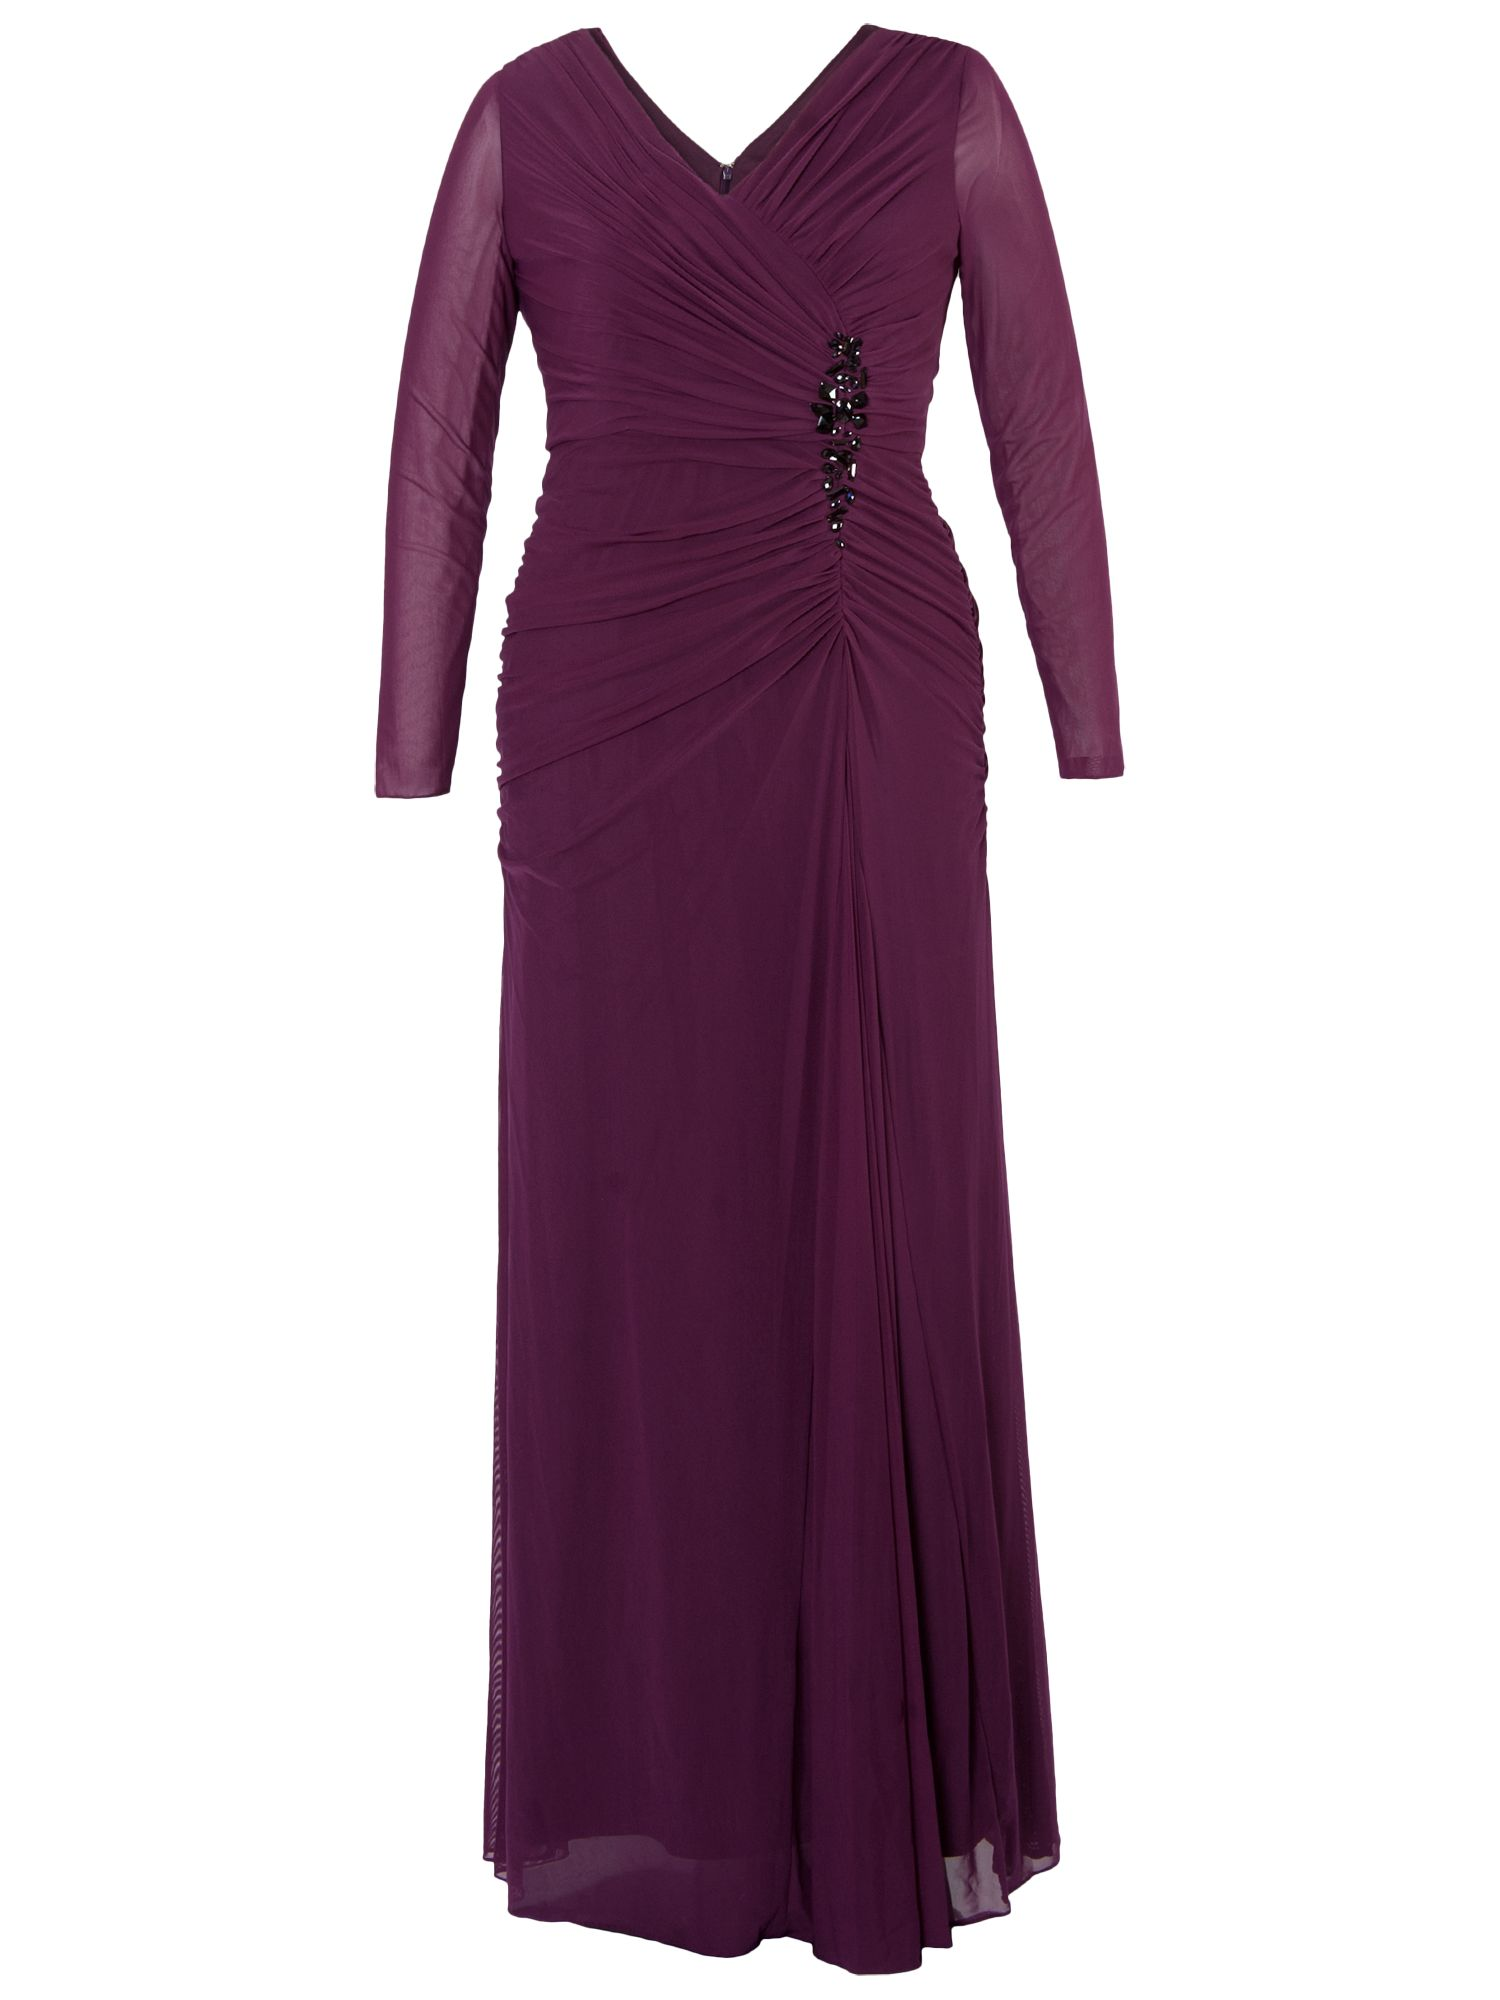 chesca ruched bodice jewel dress, chesca, ruched, bodice, jewel, dress, aubergine|black|aubergine|aubergine|aubergine|black|aubergine|black|black|black|black|aubergine|black|aubergine, 20|12|24|22|12|14|18|18|24|16|20|14|22|16, women, eveningwear, plus size, womens dresses, 1097192